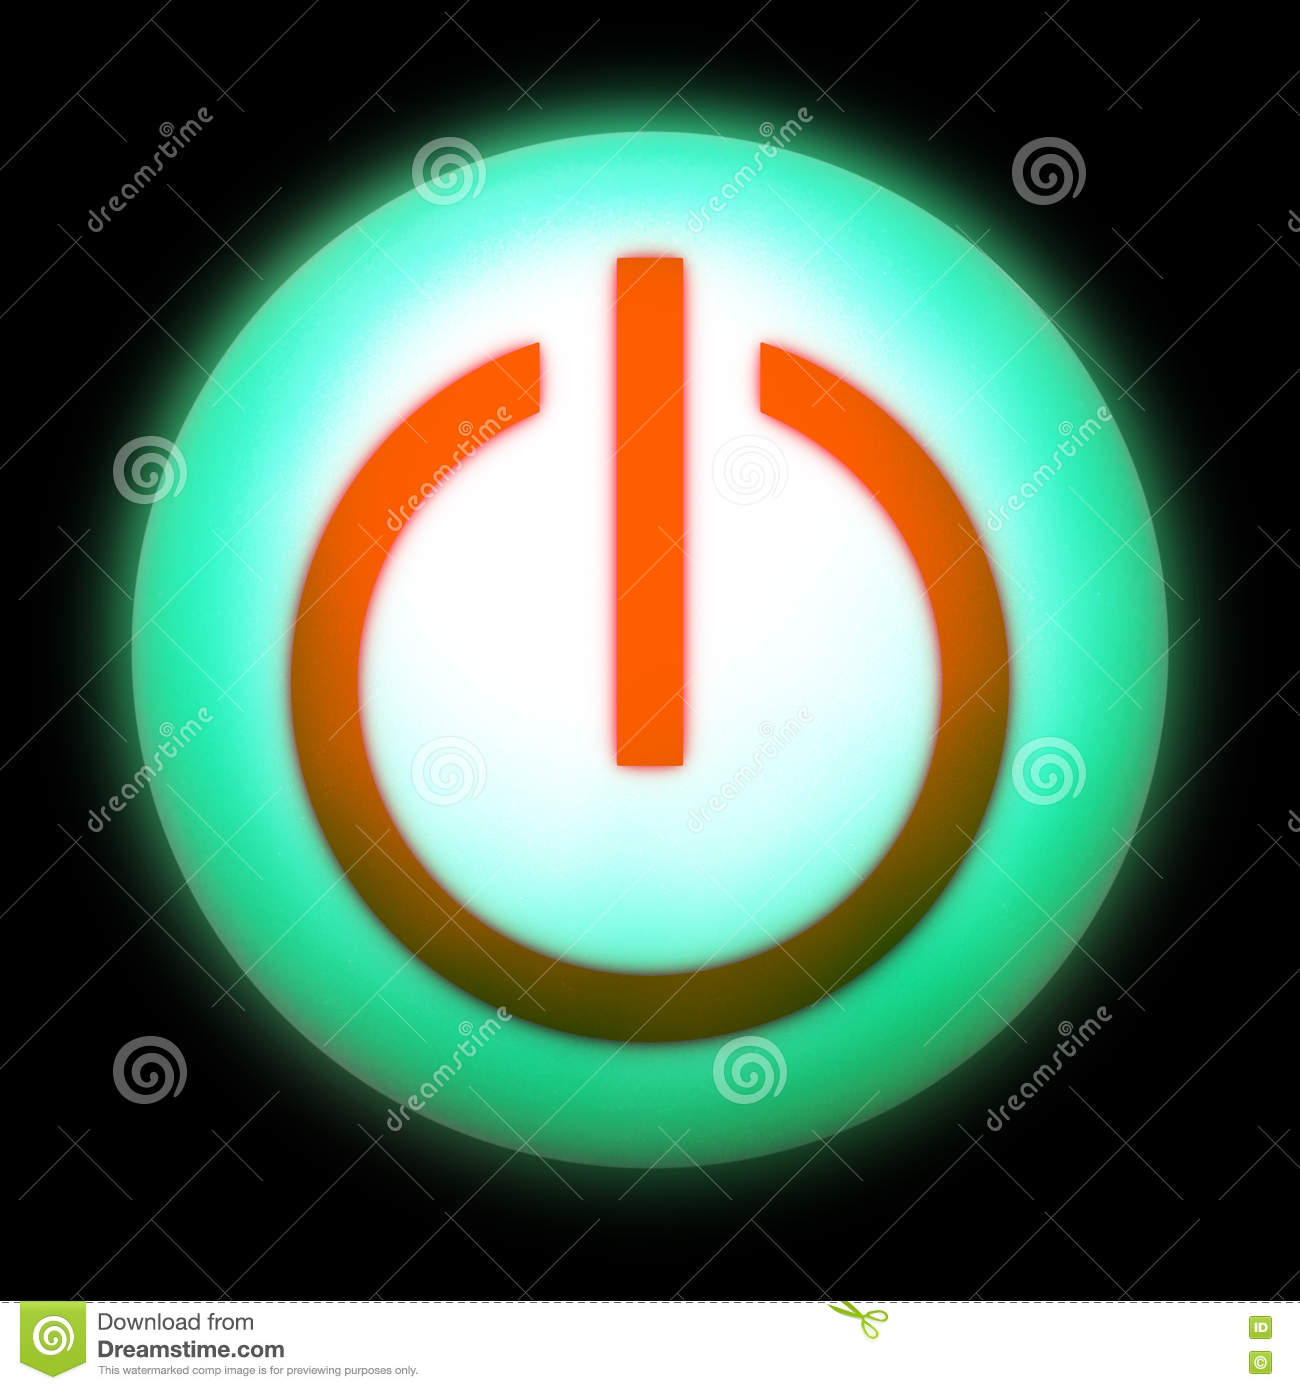 Icon On Off Stock Image Image Of Start Free Graphic 78120367